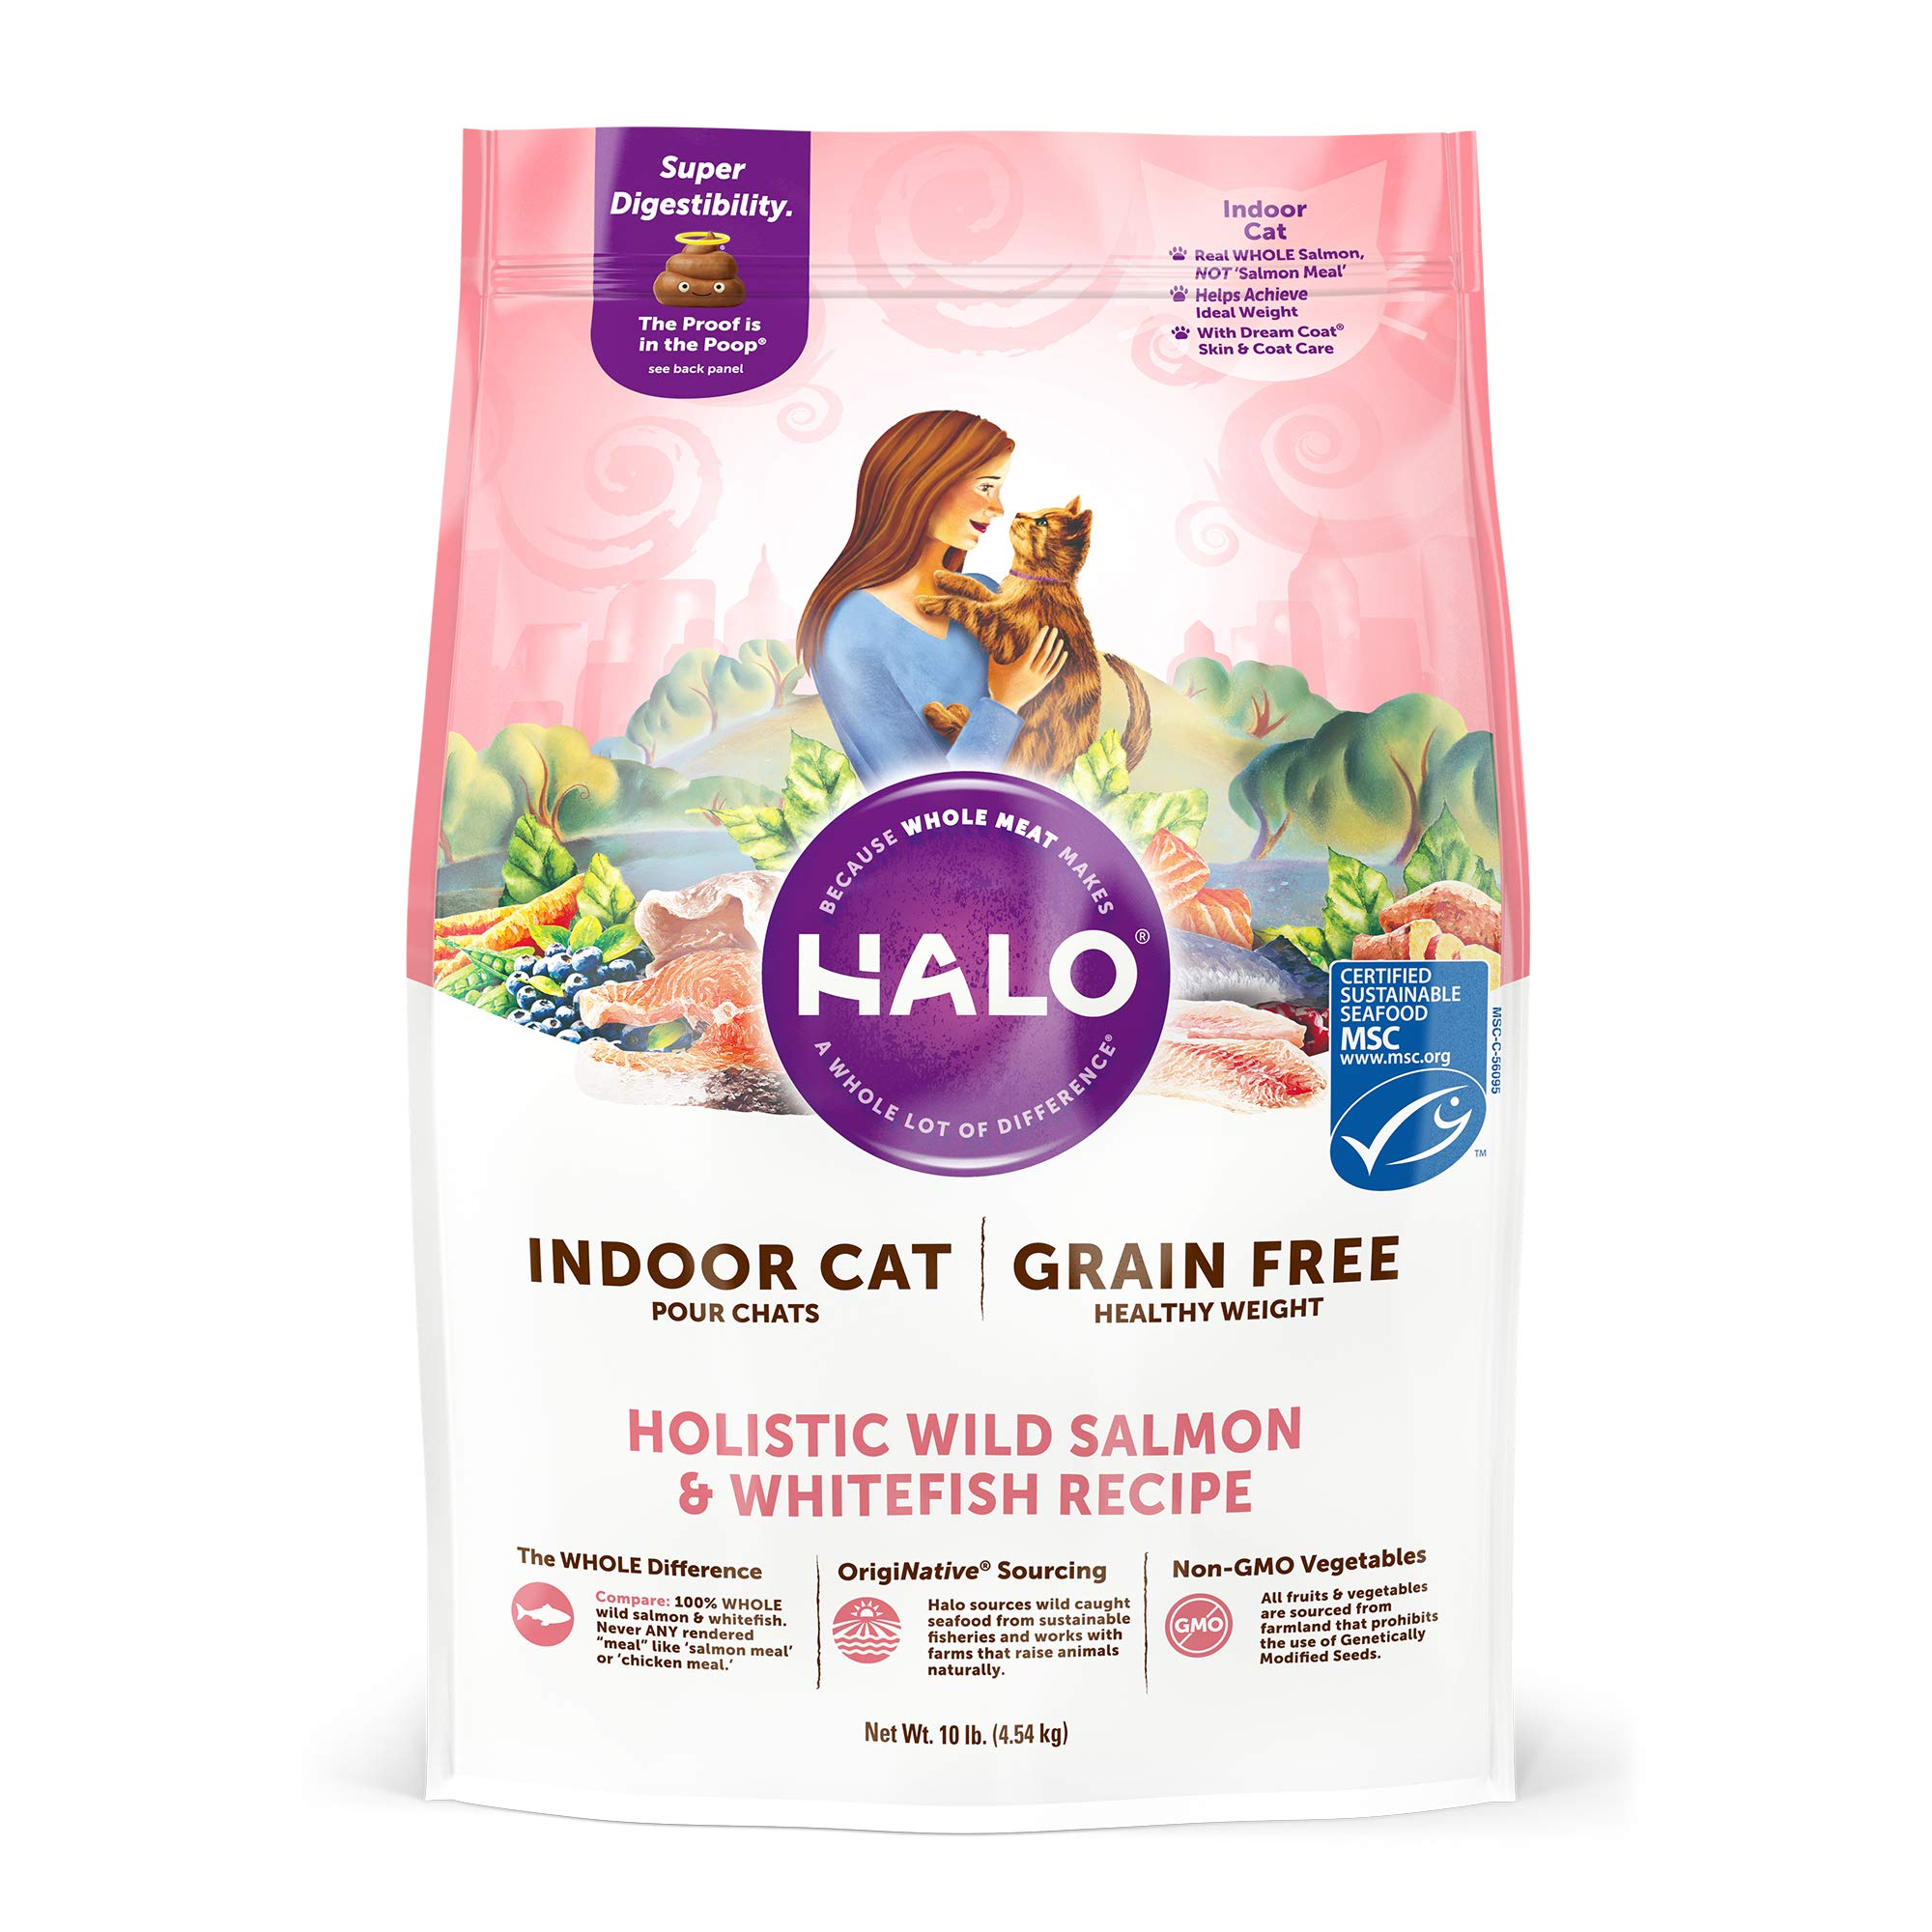 Halo, Purely for Pets 35201 Grain Free Natural Dry Cat Food, Indoor Healthy Weight Wild Salmon & Whitefish Recipe, 10 lb Bag, Brown by Halo